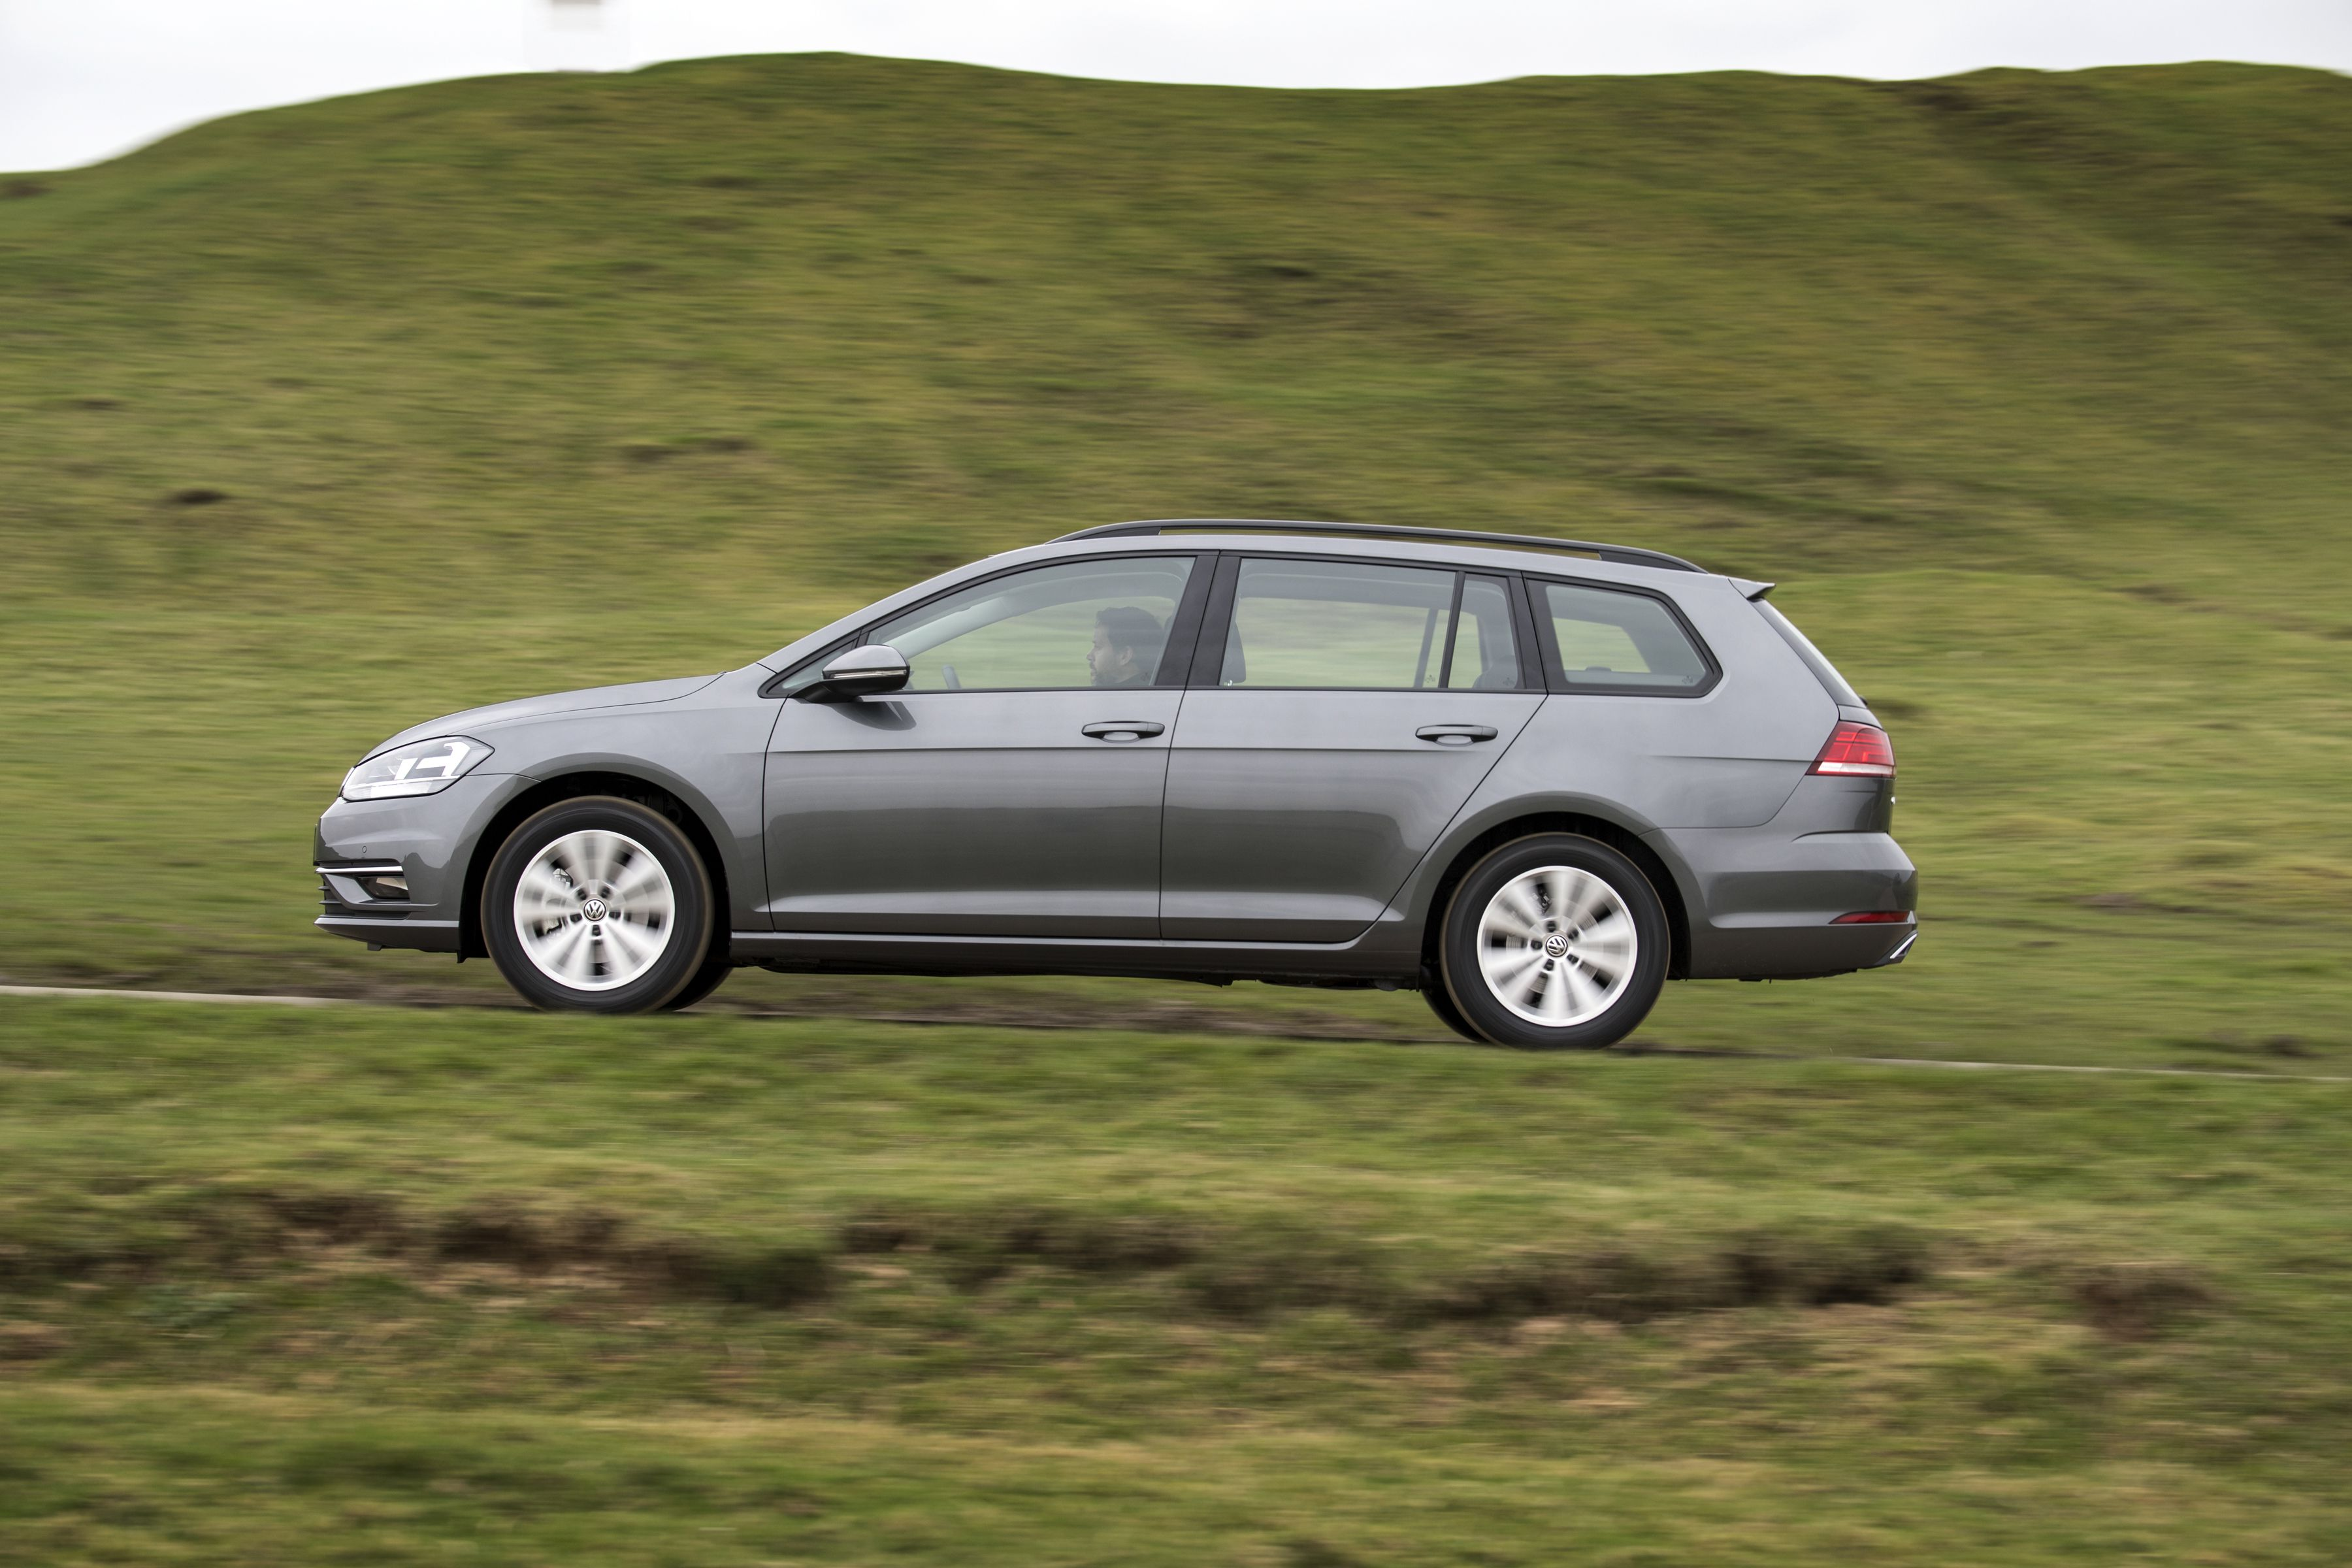 Volkswagen Golf estate speeding across the countryside